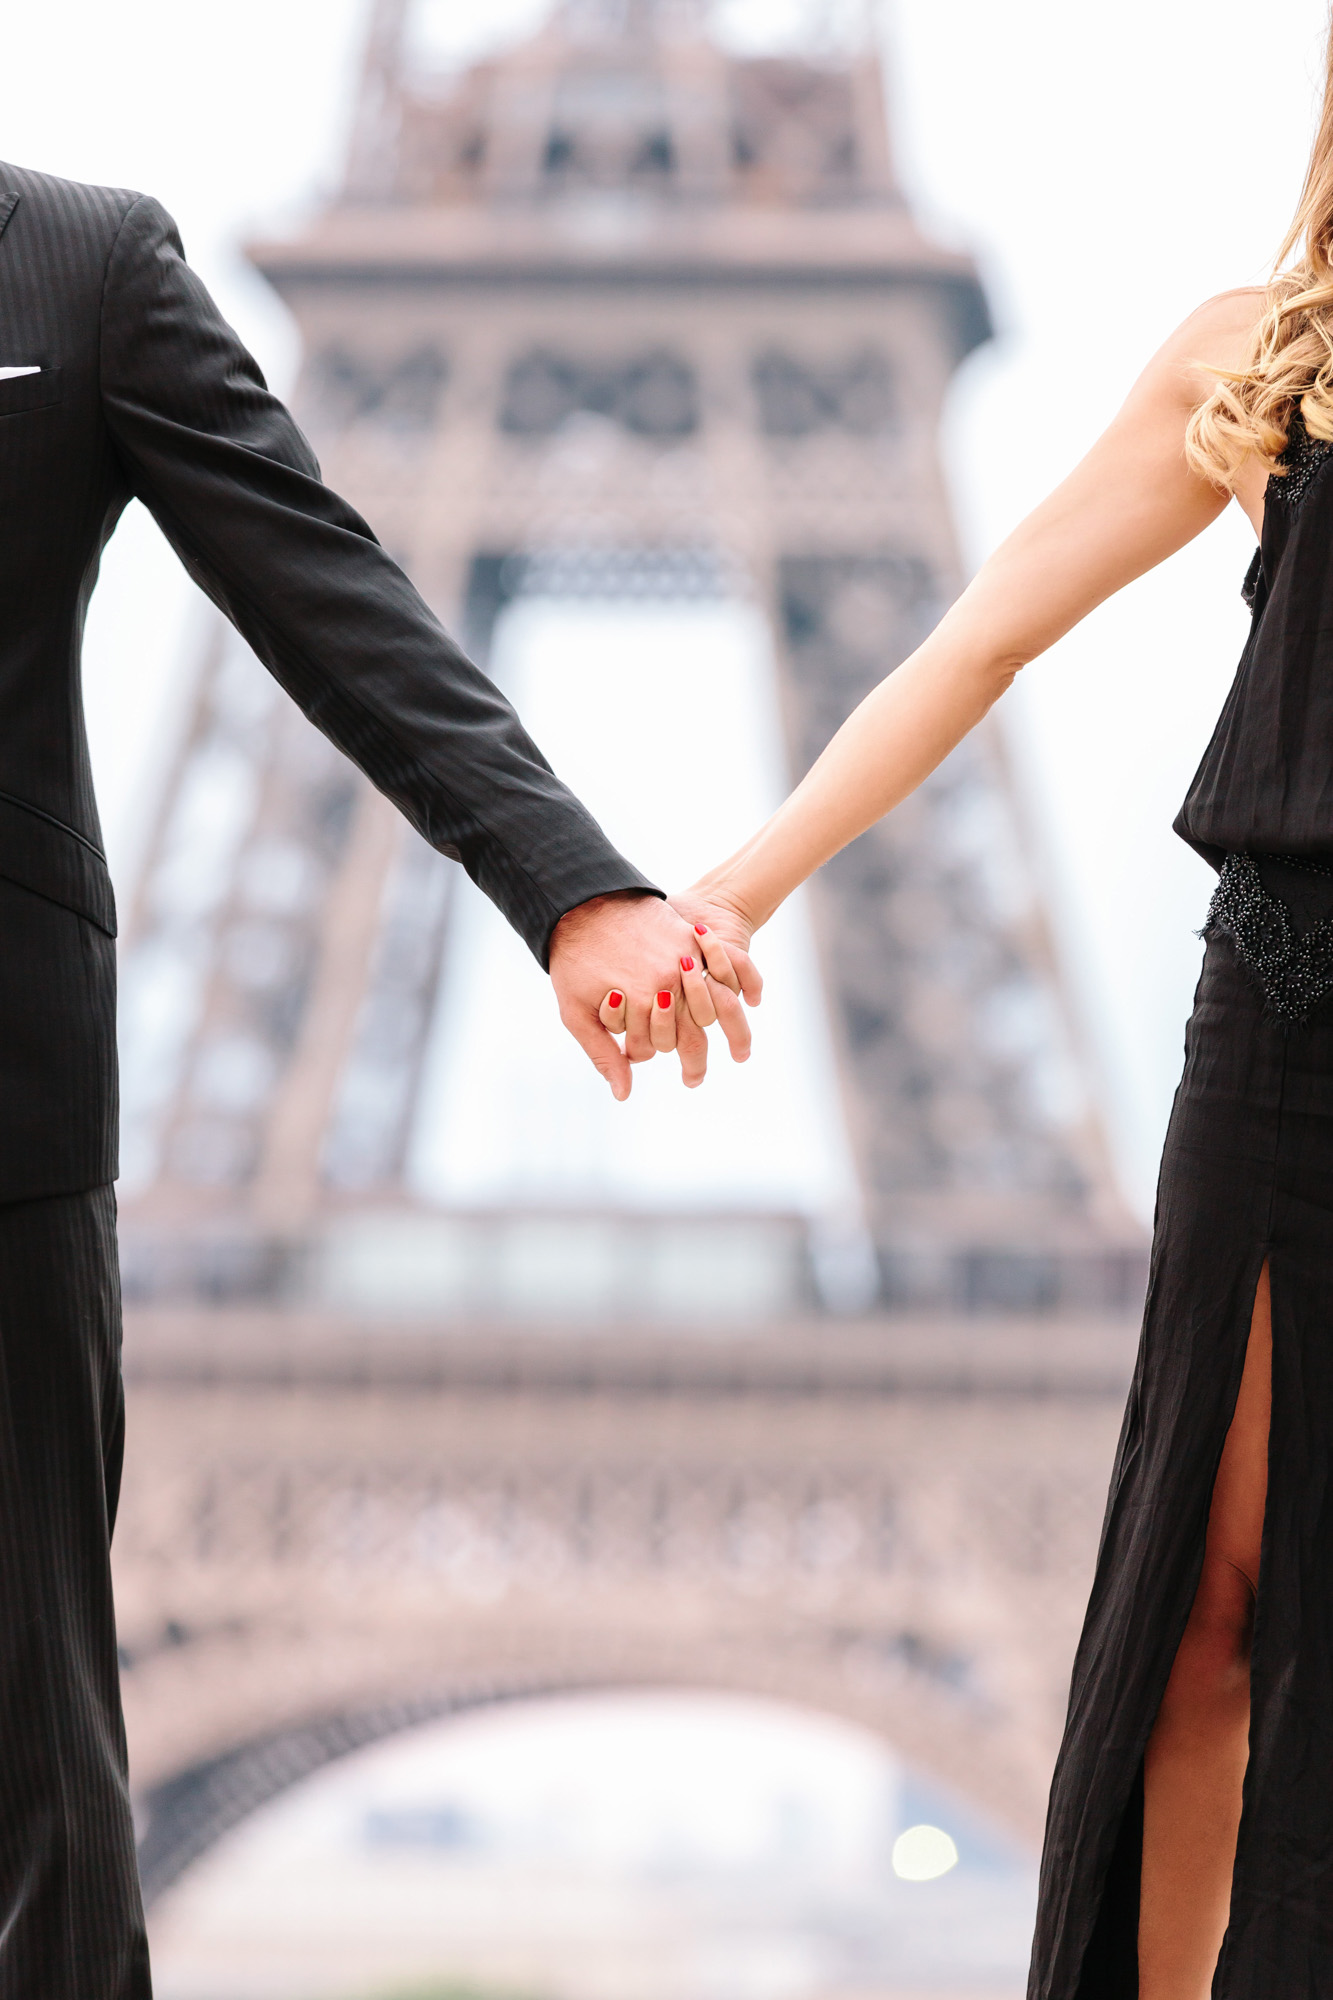 paris photographer travel love story eiffel tower